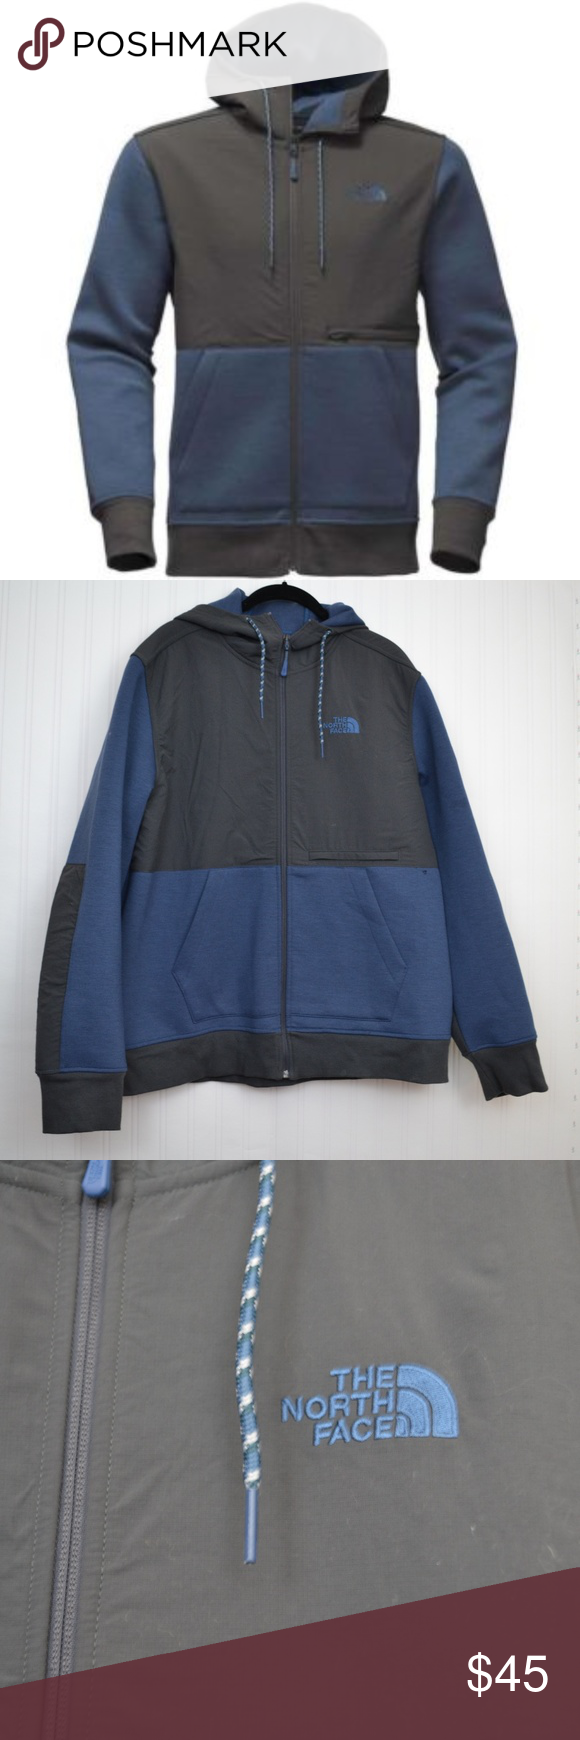 f1e2c4897 The North Face | Mens Blocked Thermal Jacket The North Face Men's ...